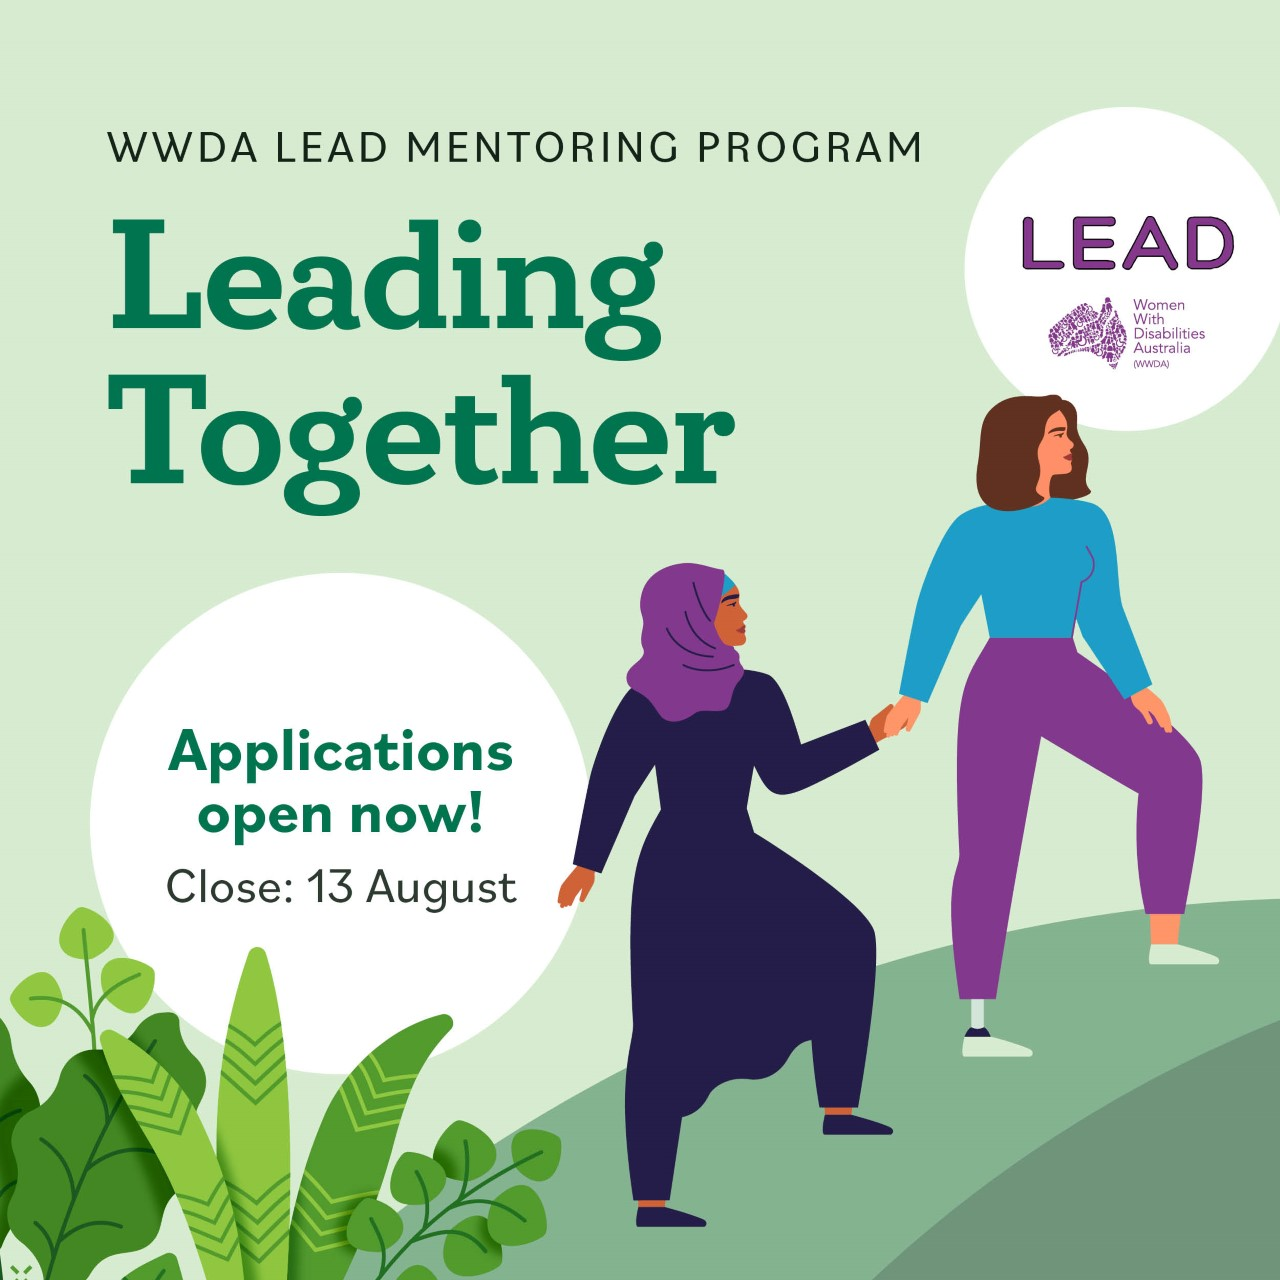 Light green background, dark green text reads WWDA Lead Mentoring Program, Leading Together. In a white circle text reads Applications open now! Close 13 August. To the right of the text is an illustration of two women, one with long brown hair and one wearing a headscarf. One of the women are walking , leading the other one by holding her hand.